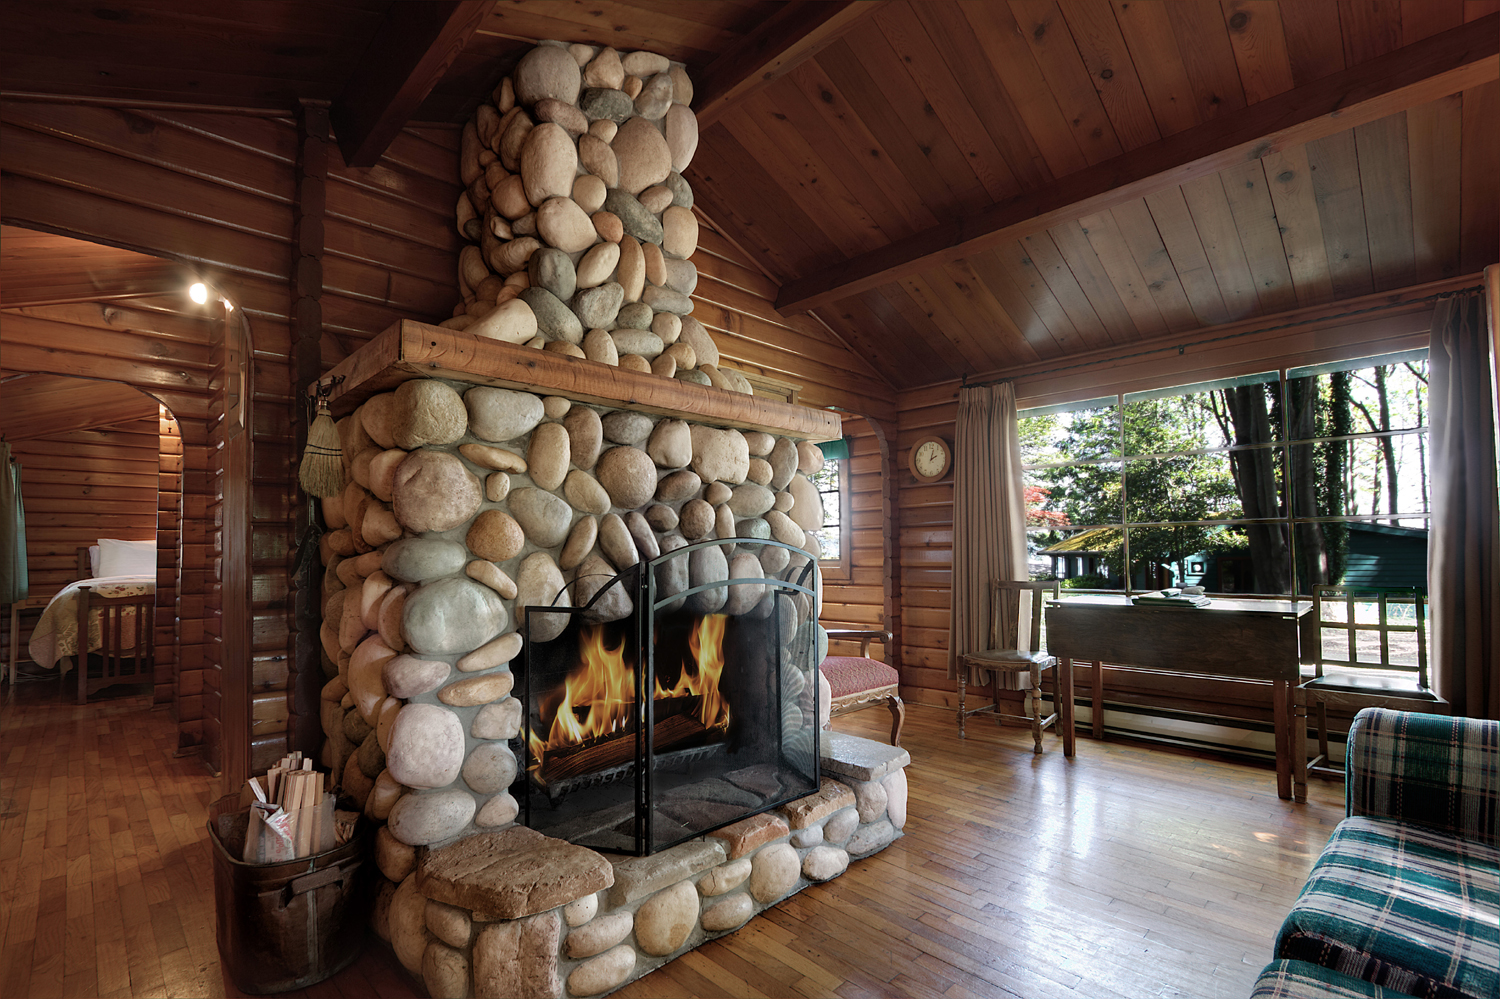 CABIN 8 - One Bedroom  Nestled in the gardens, this cabin offers a calm tranquility. From $189-$245